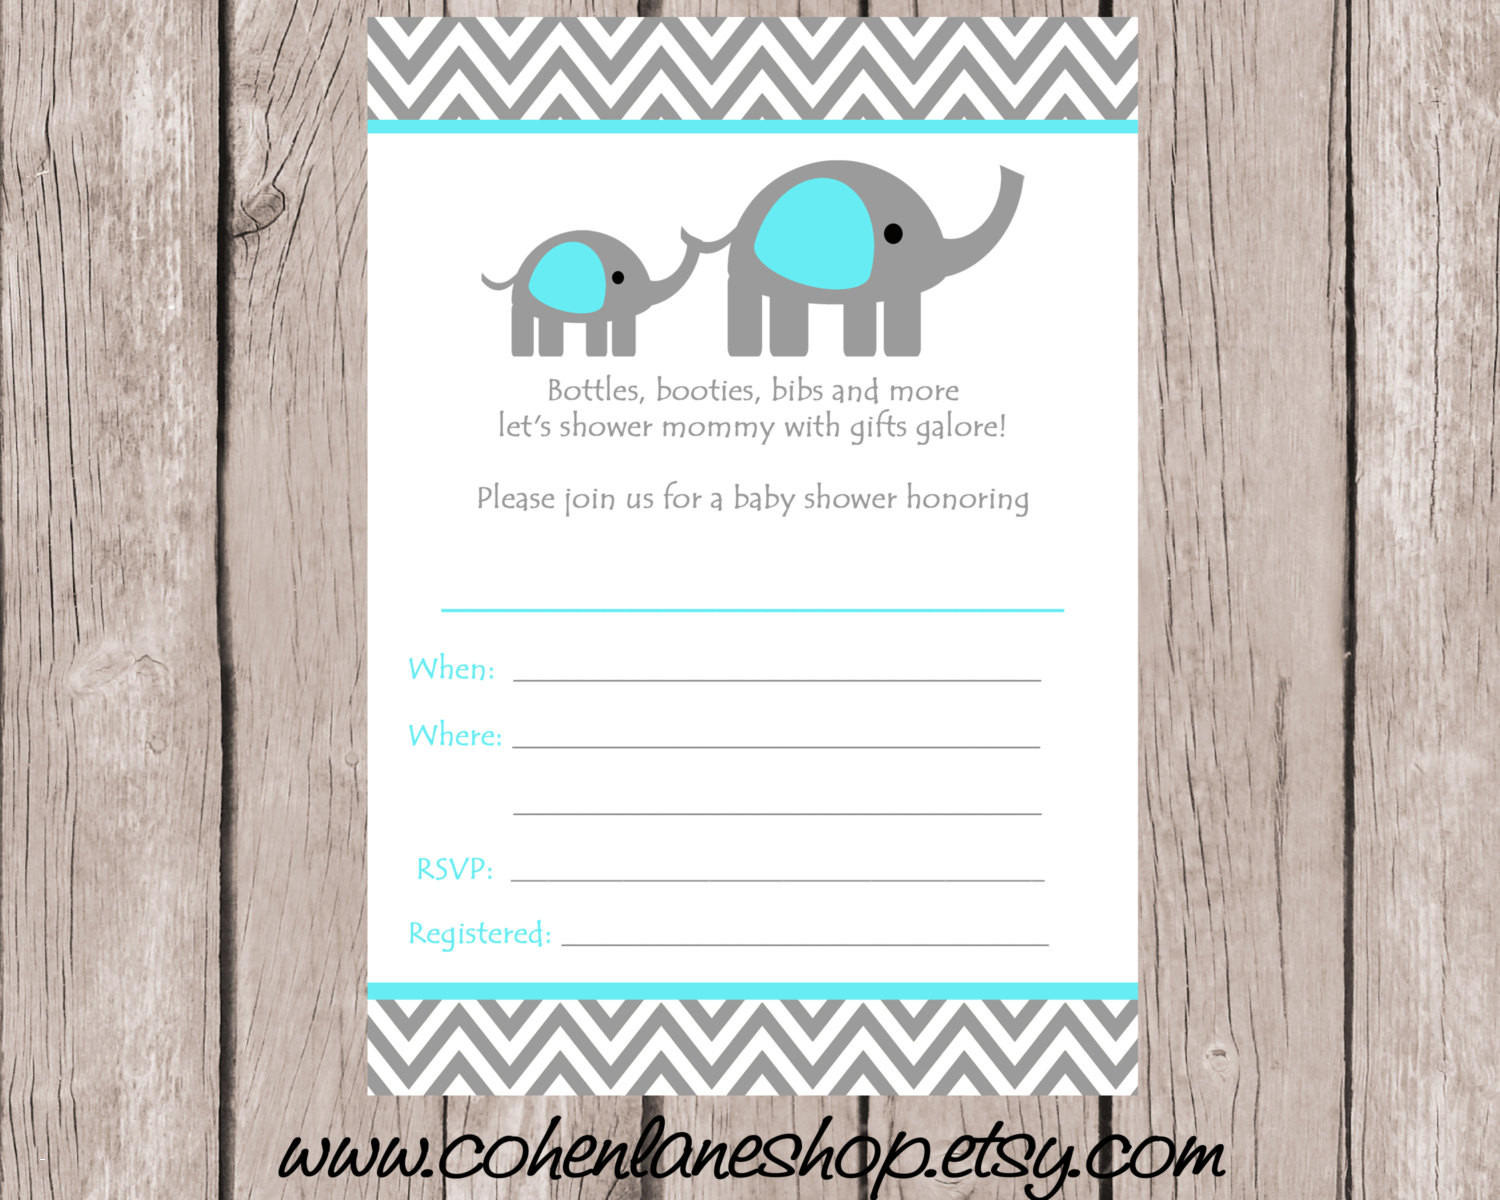 Full Size of Baby Shower:baby Shower Invitations For Boys Homemade Baby Shower Decorations Baby Shower Ideas Nursery Themes For Girls Baby Girl Party Plates Baby Shower Invitations For Girls Creative Baby Shower Ideas Baby Girl Themes For Bedroom